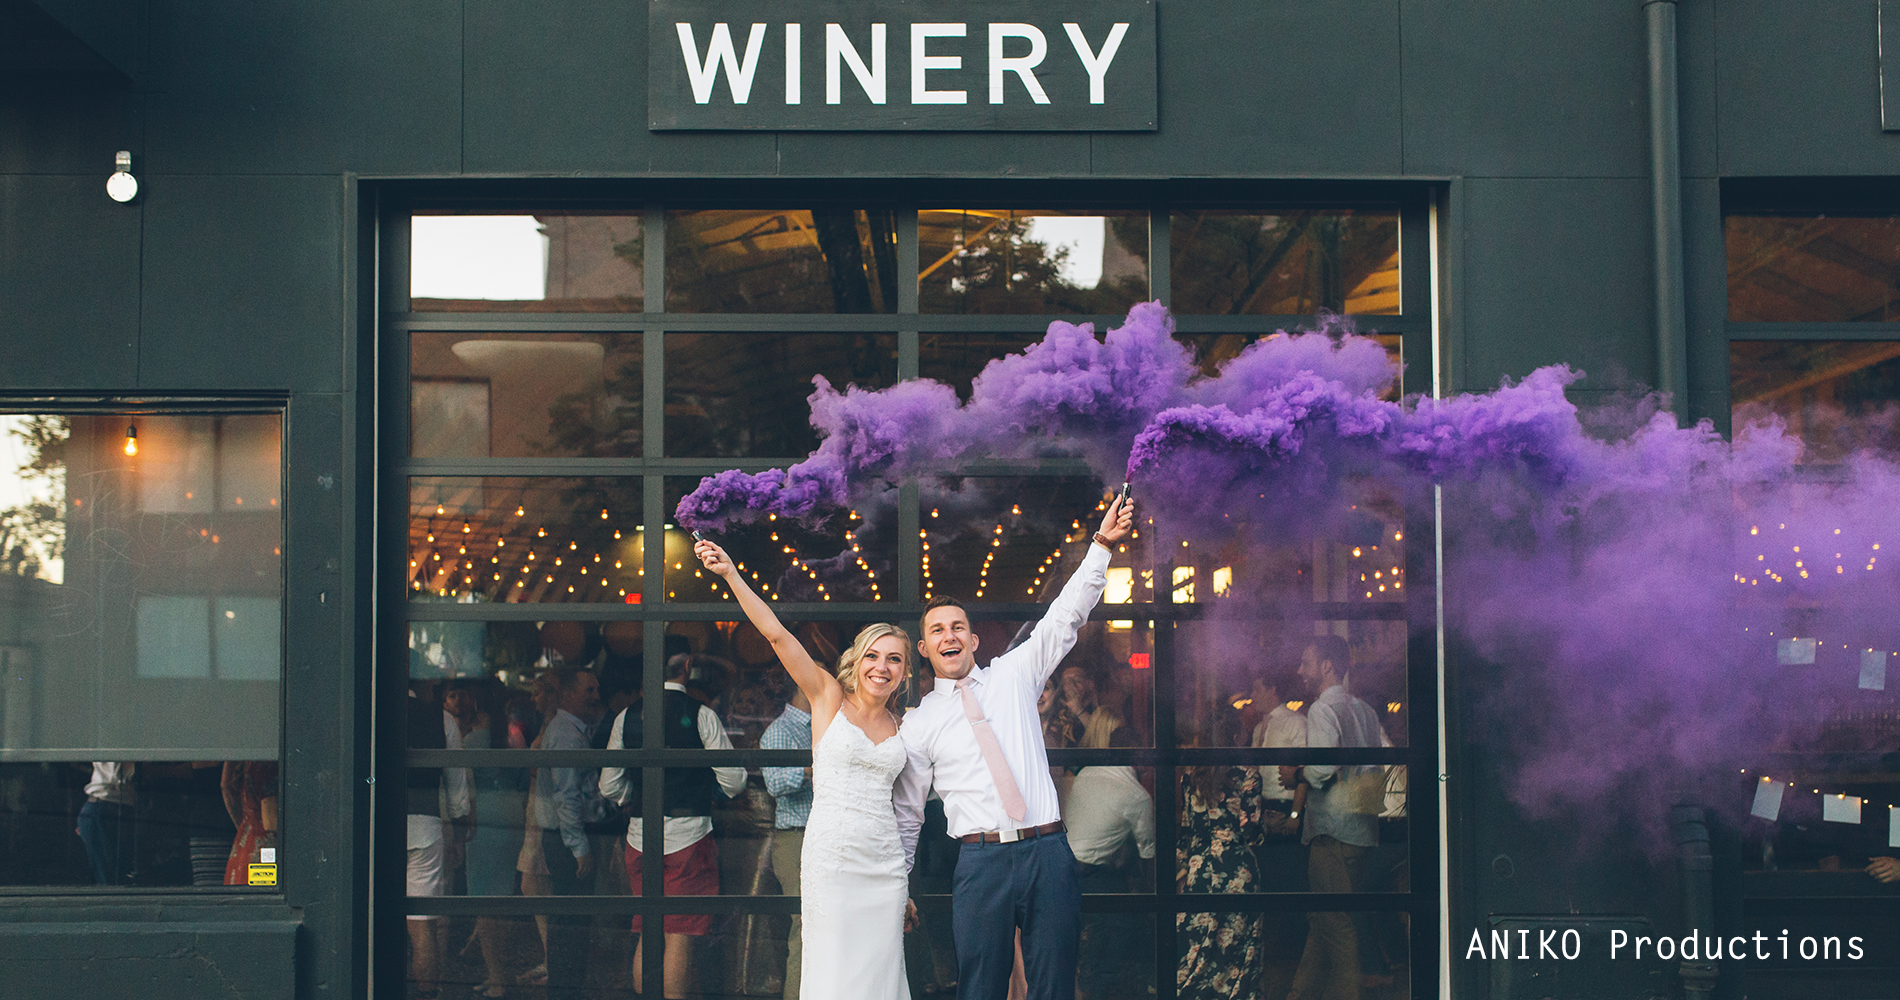 Weddings_Wedding_Events_Design_Wedding_Cake_Corporate_Business_Meeting_Sales_Training_Event_Marketing_Oregon_Portland_Adventure_Winery_Taproom_Event-Space_Dinner_Party_Restaurant